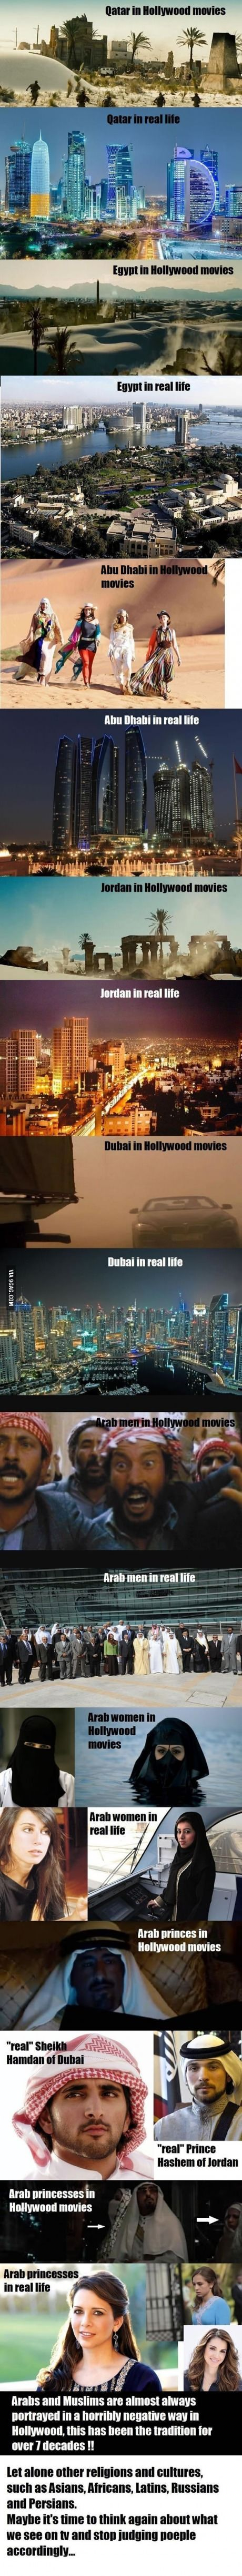 Arabs in Hollywood Vs Reality. Everything from fashion, people, and cities. #9Gag #funny #humor